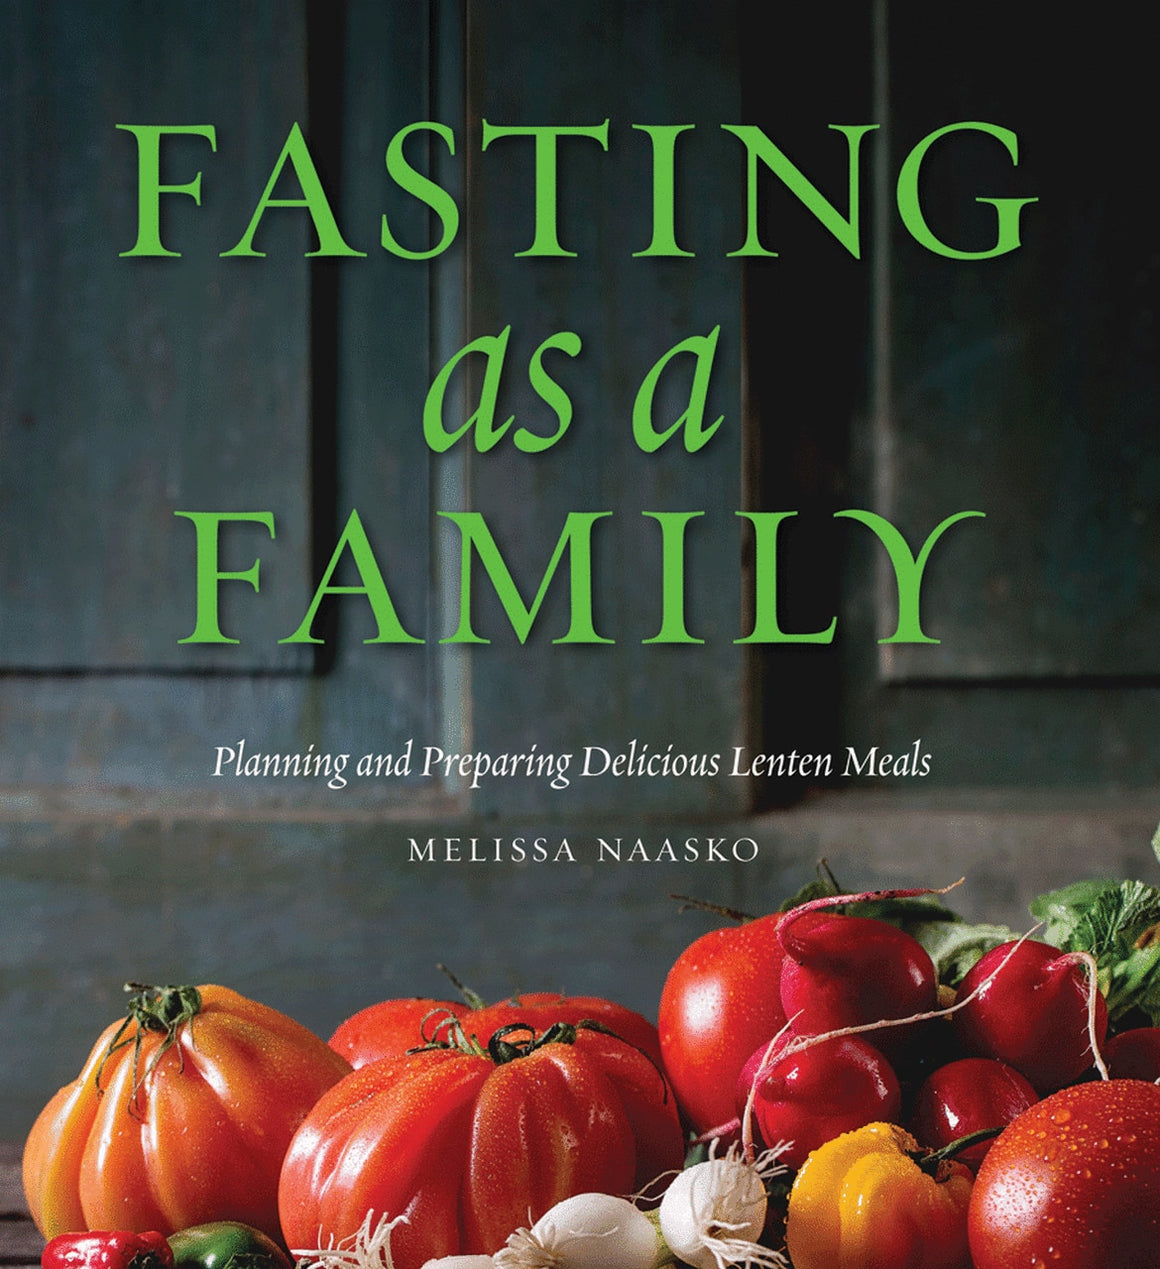 Fasting as a Family - Planning and Preparing Delicious Lenten Meals